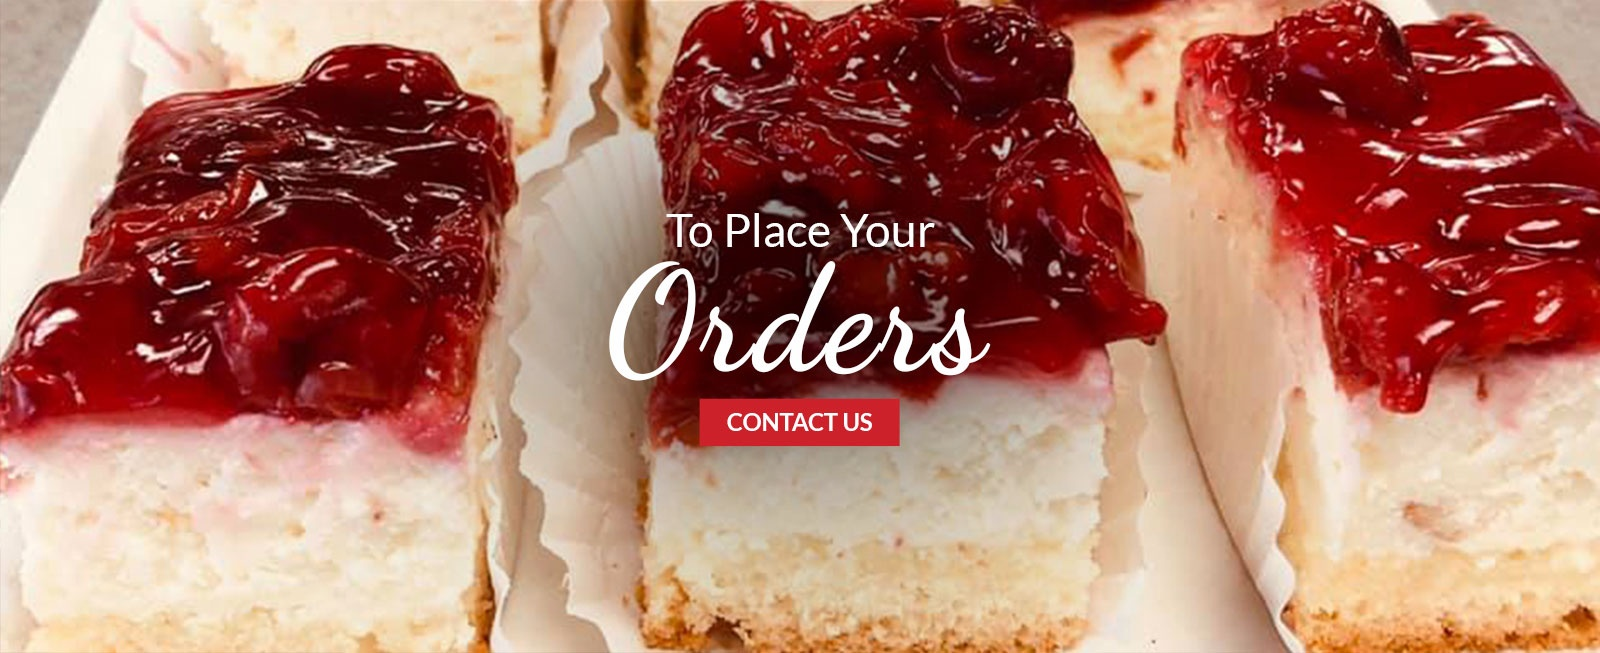 To Place Your Orders for Cakes and Pastries - Contact Us at The Brick Oven Bakery in Burlington ON